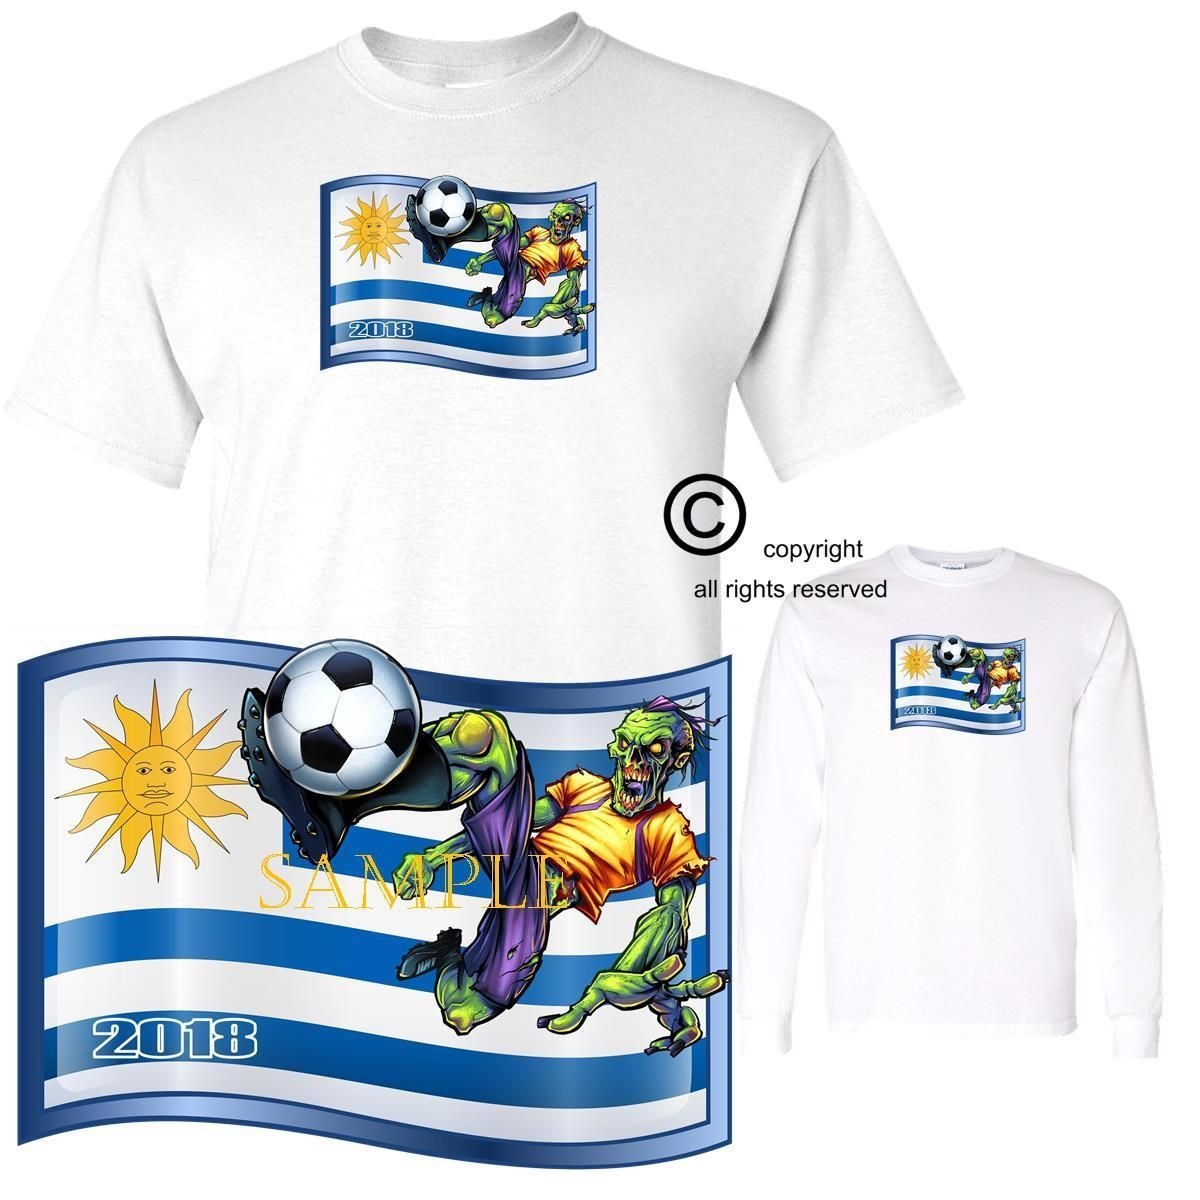 314afac24 Soccer 2018 World Cup Zombie Player Team Uruguay Short   Long Sleeve T Shirt  Discount Price 21.95 Free Shipping Buy it Now